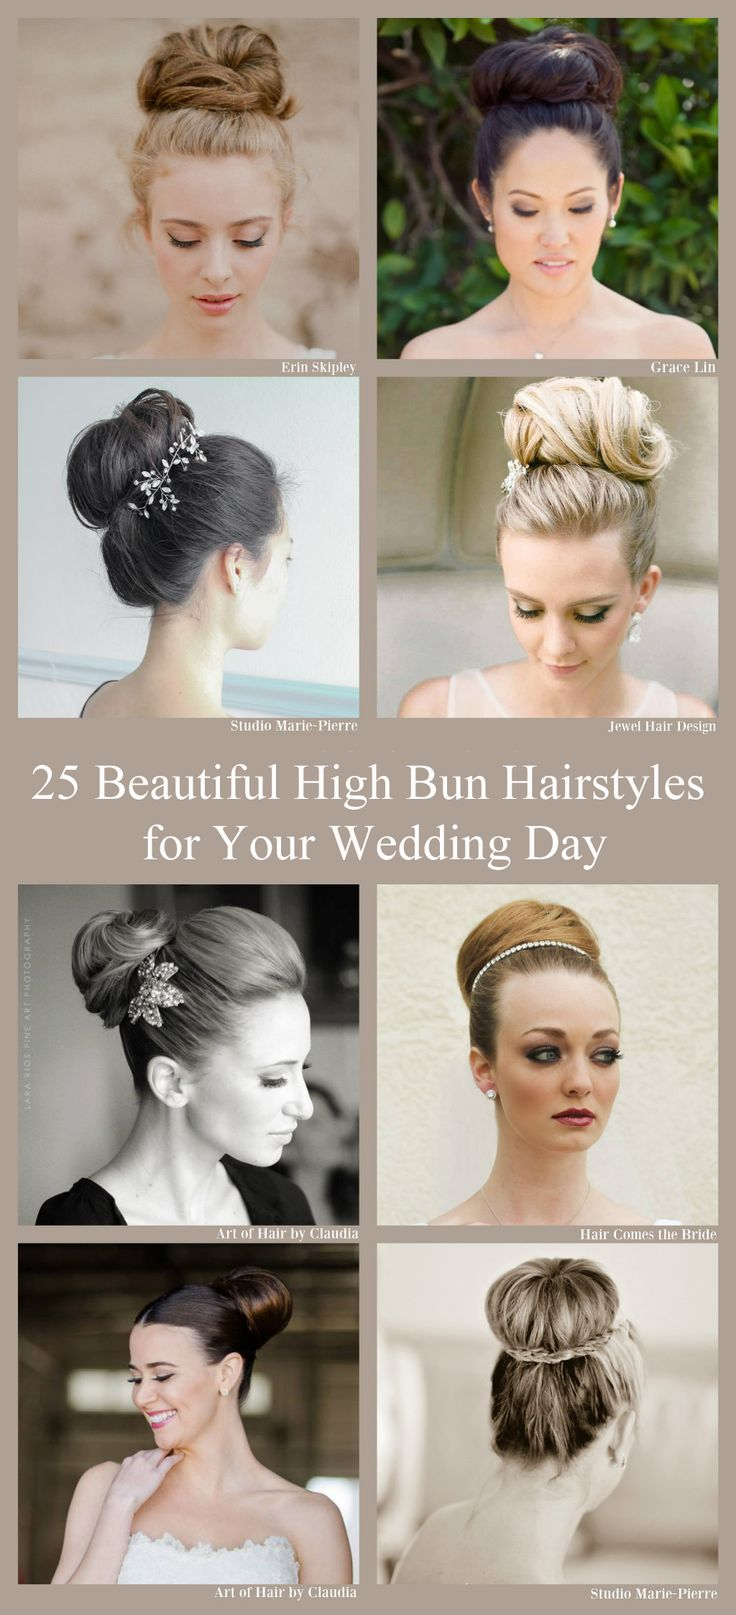 High Bun Bridal Hairstyles for your Wedding Day brought to you by Hair Comes the Bride